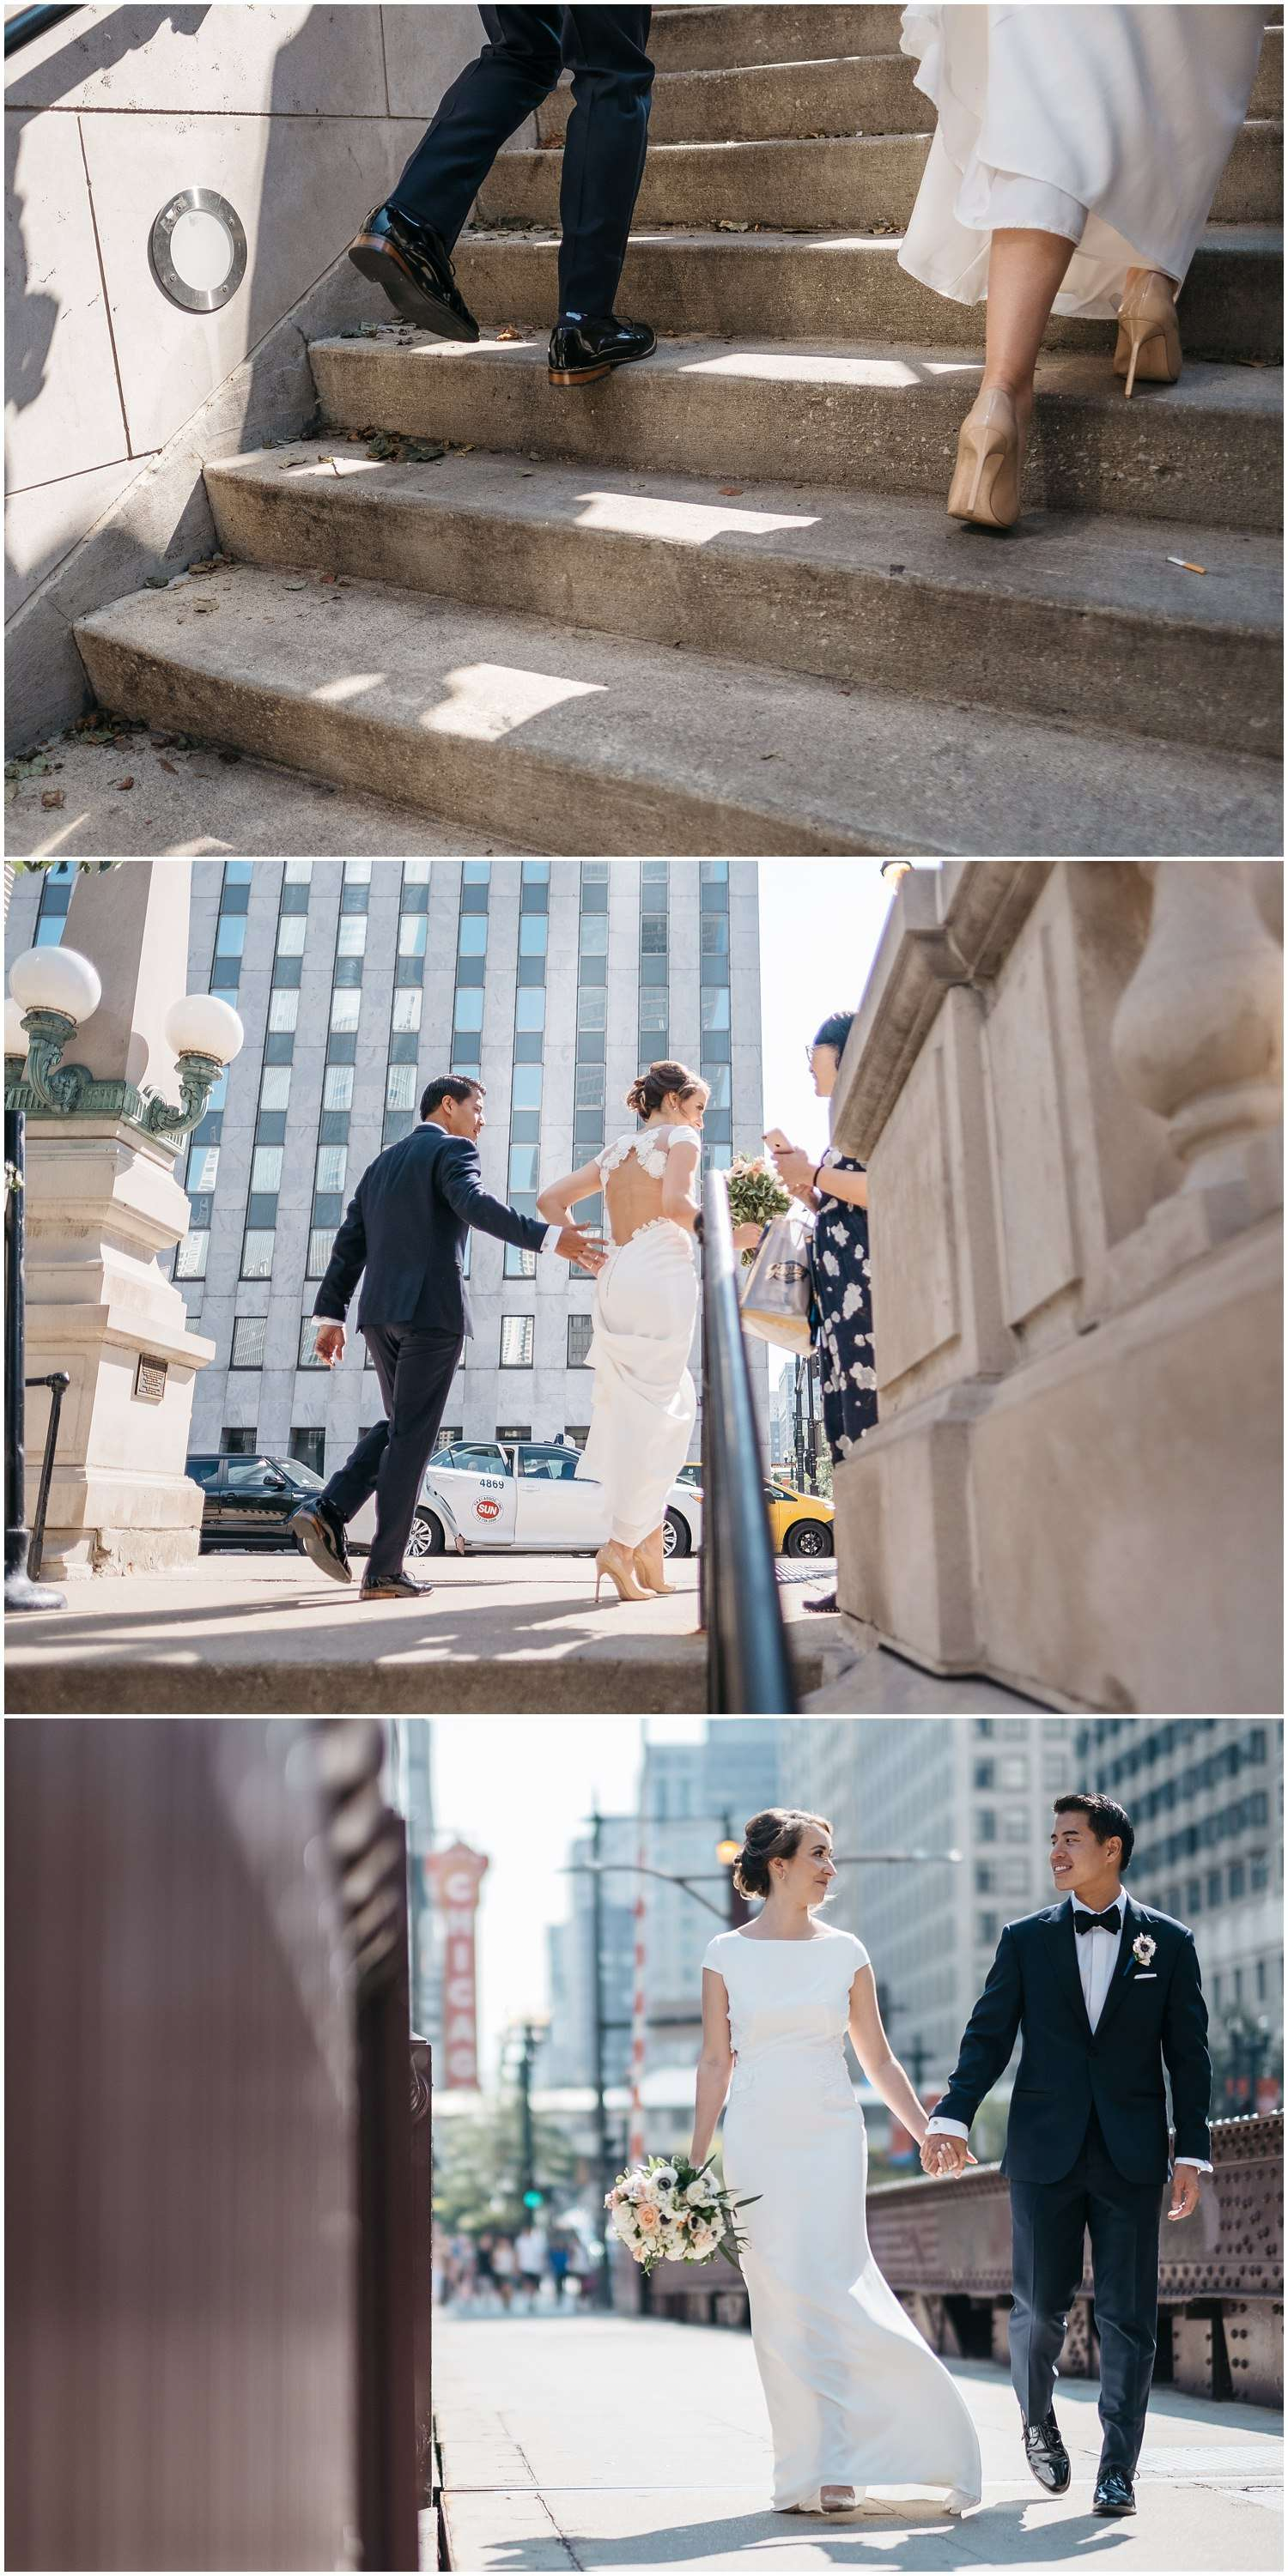 chicago, photographer, photography, couples session, couple, engagement, session, illinois, engagement session, lifestyle, documentary, photojournalistic, photojournalism, natural, candid, wisconsin, utah, michigan, colorado, chicagoland, portrait, unposed, elopement, elope, elopement photographer, chicago elopement, illinois elopement, anniversary, garfield park conservatory, second Presbyterian church, south loop